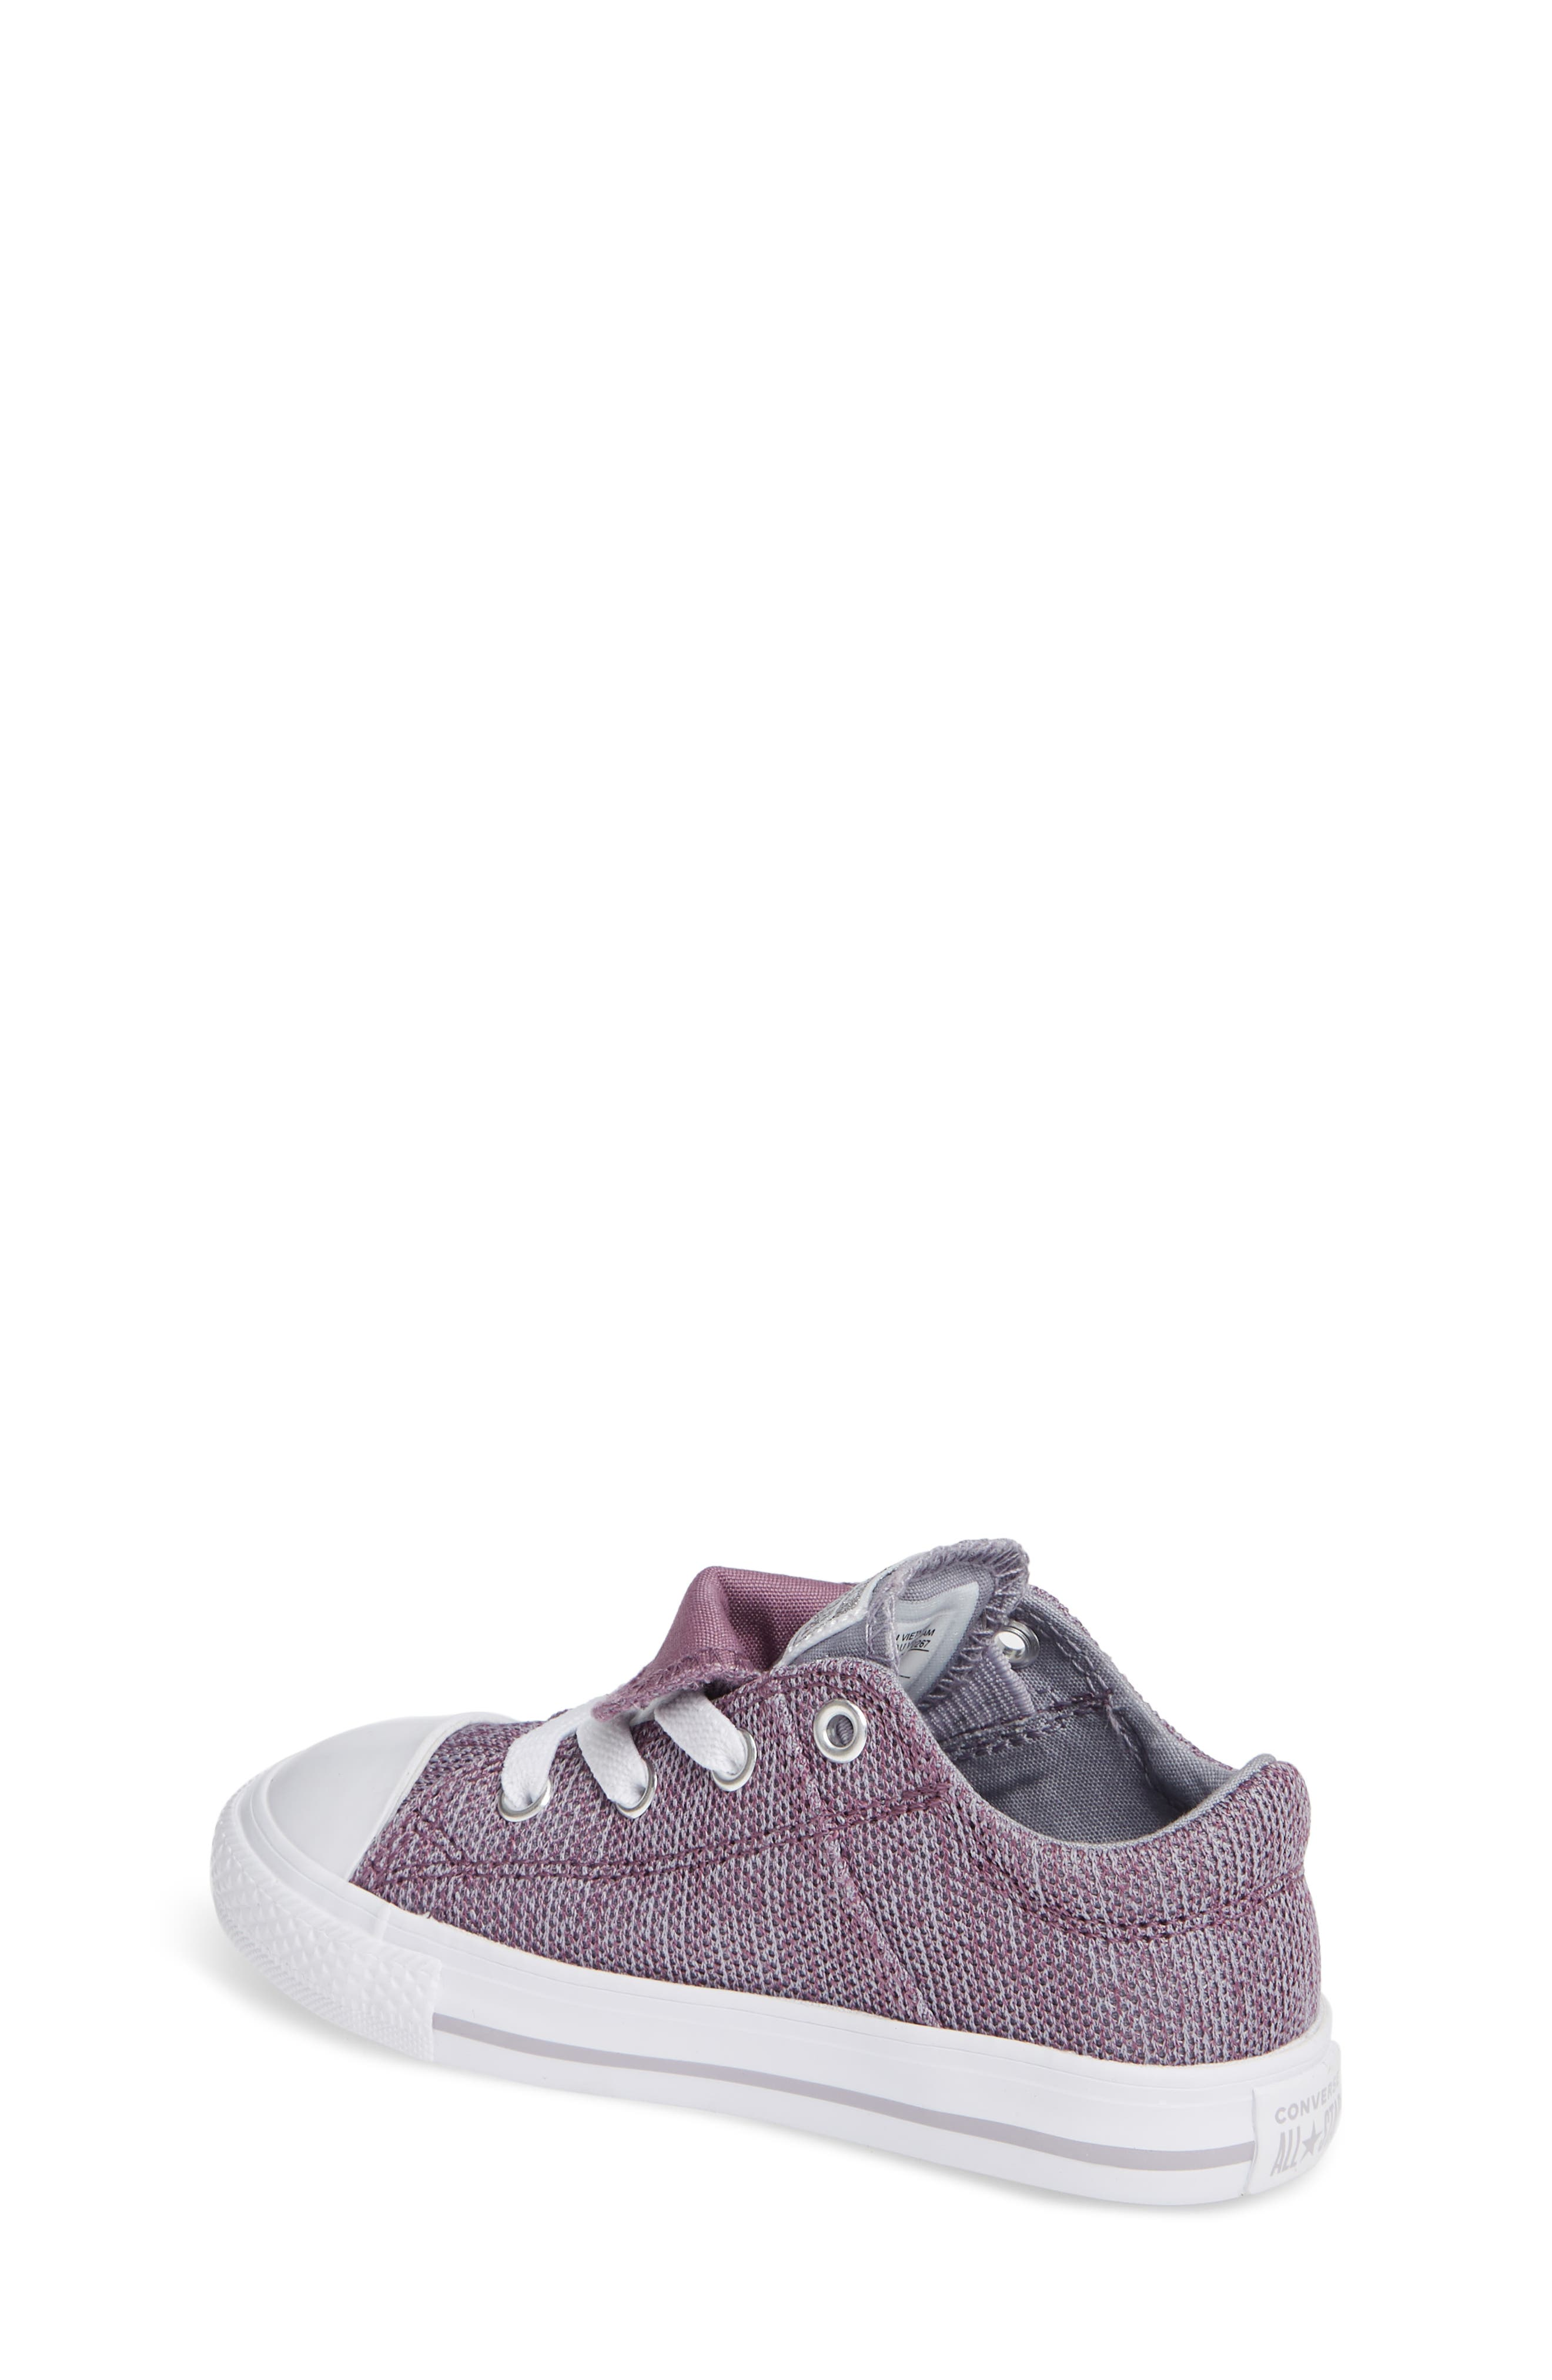 ,                             Chuck Taylor<sup>®</sup> All Star<sup>®</sup> Maddie Double Tongue Sneaker,                             Alternate thumbnail 44, color,                             501